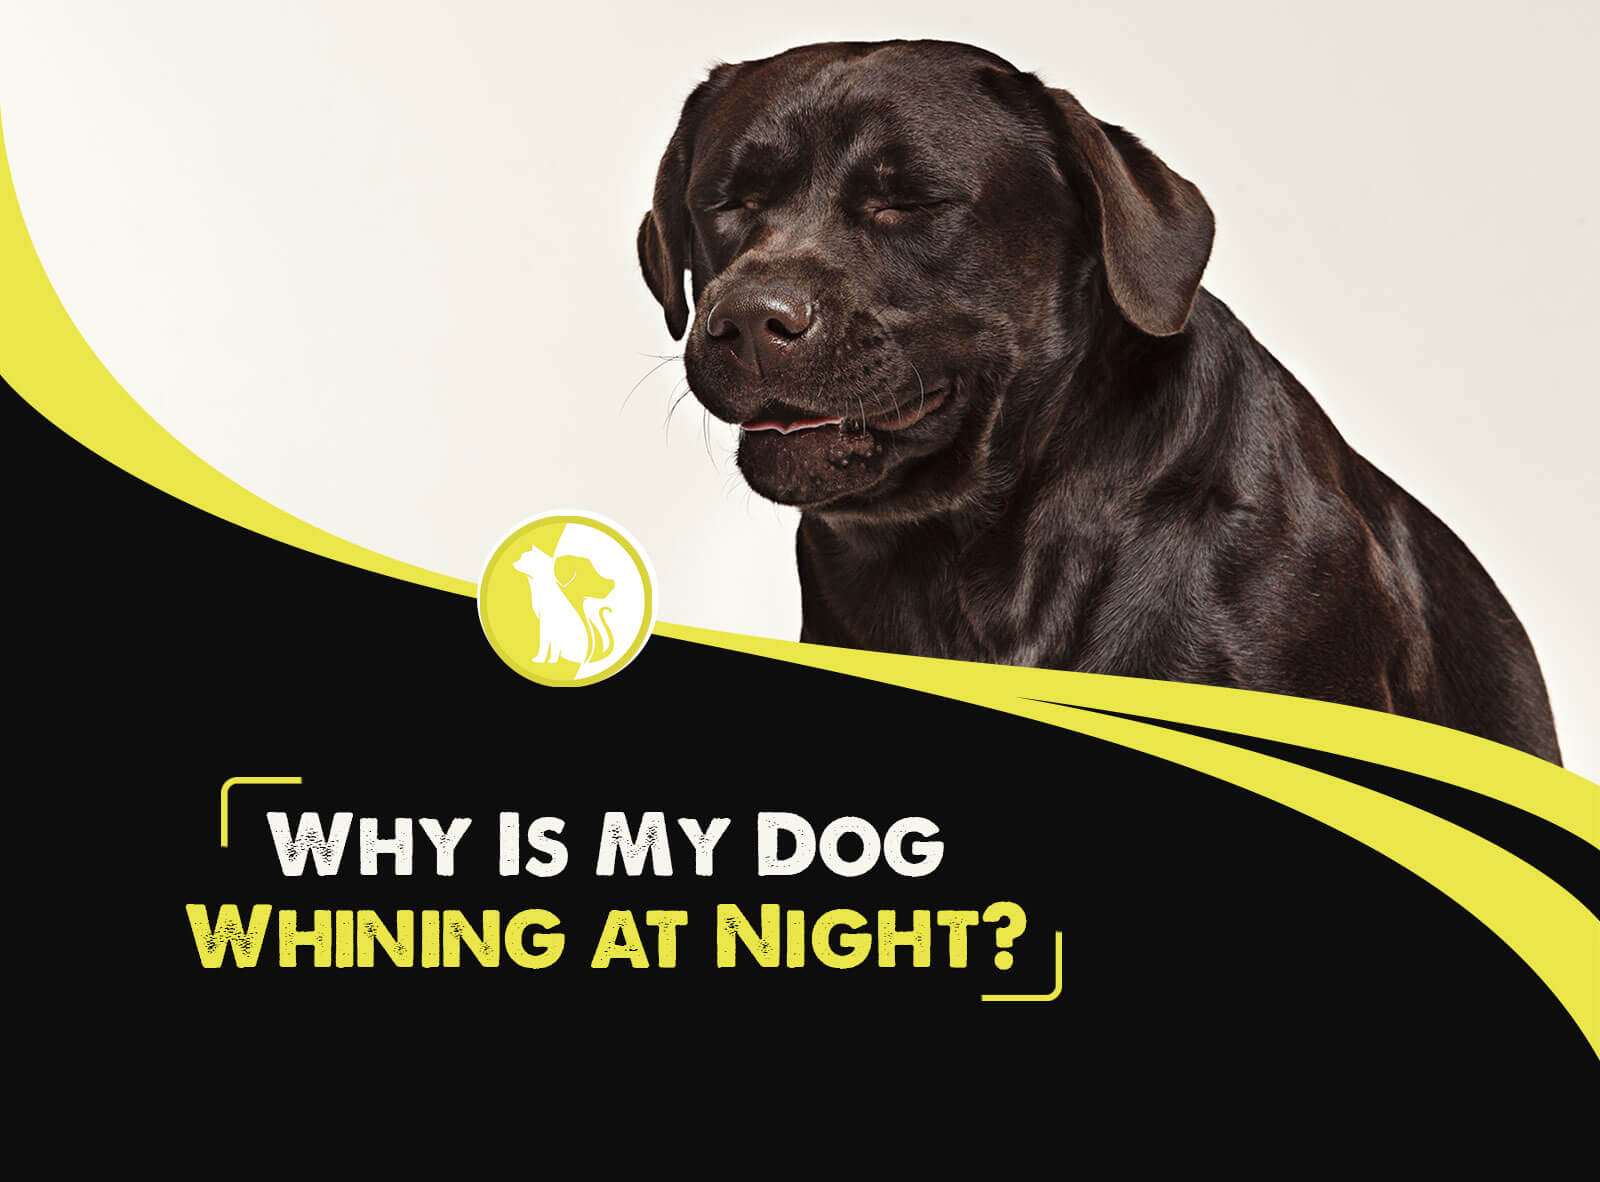 Why Is My Dog Whining at Night?